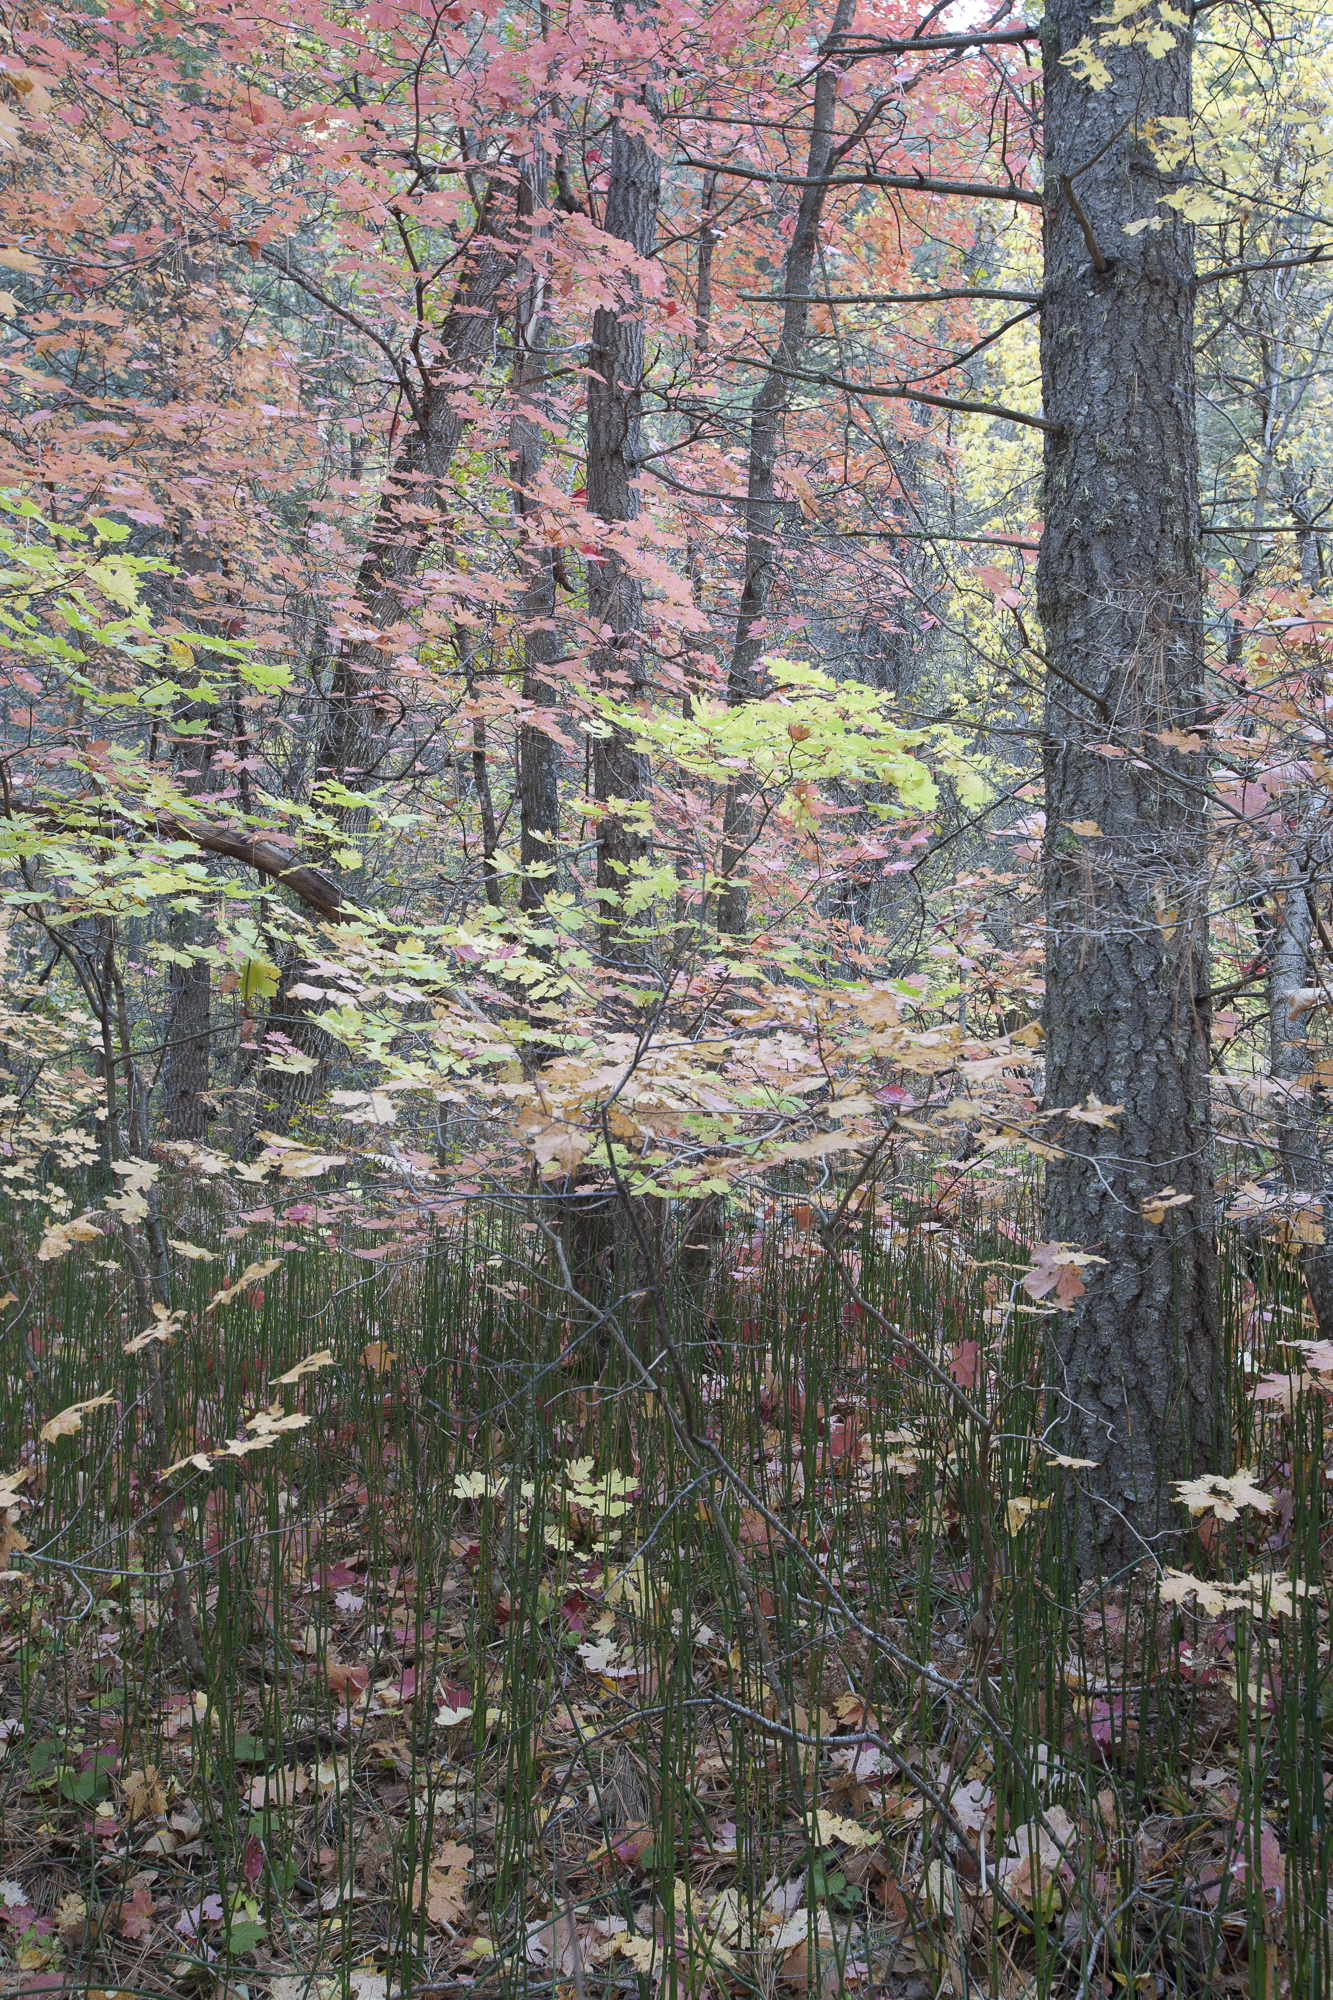 Horsetails & Maples in West Fork, RAW image